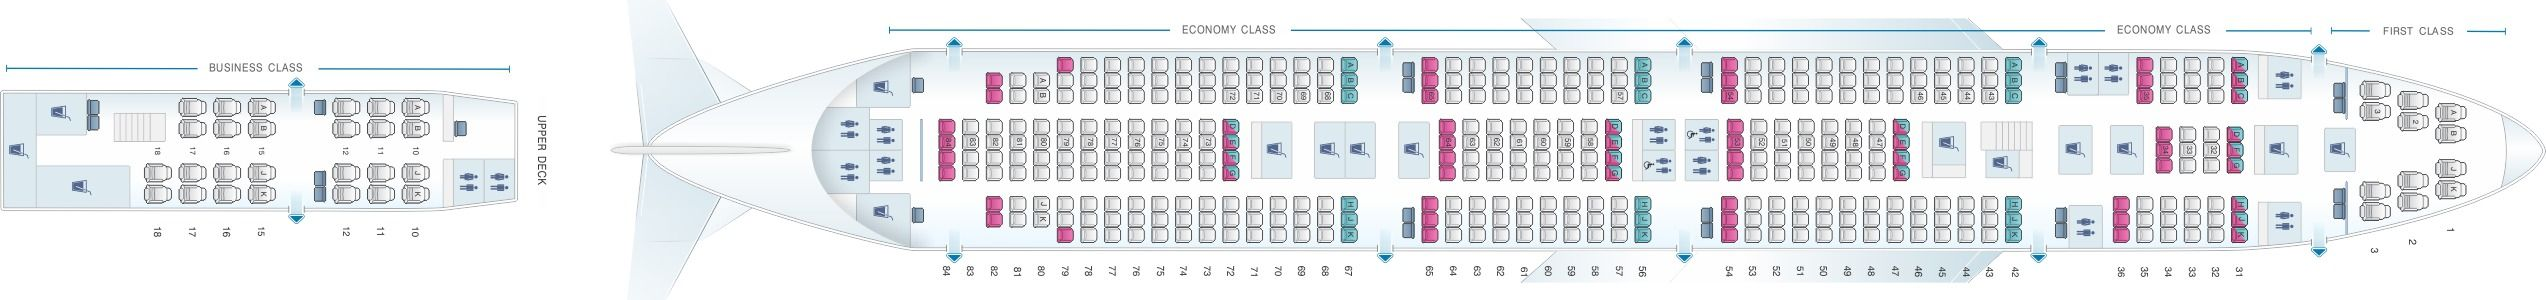 Seat Map And Seating Chart Boeing 747 400 Air India Air India Boeing 747 400 Boeing 747